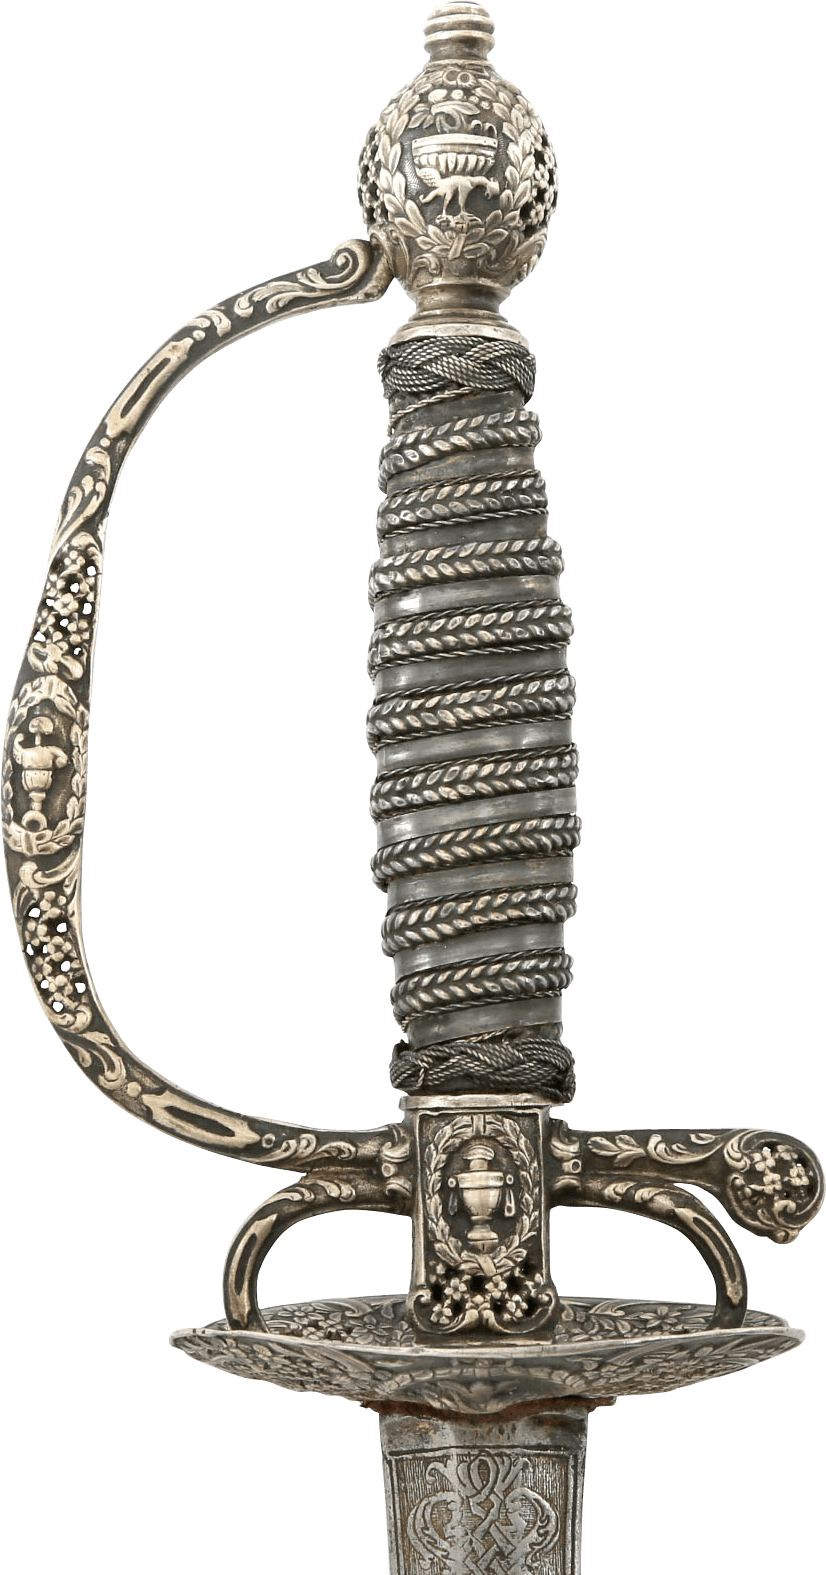 MAGNIFICENT SILVER HILTED SMALLSWORD C.1750-60